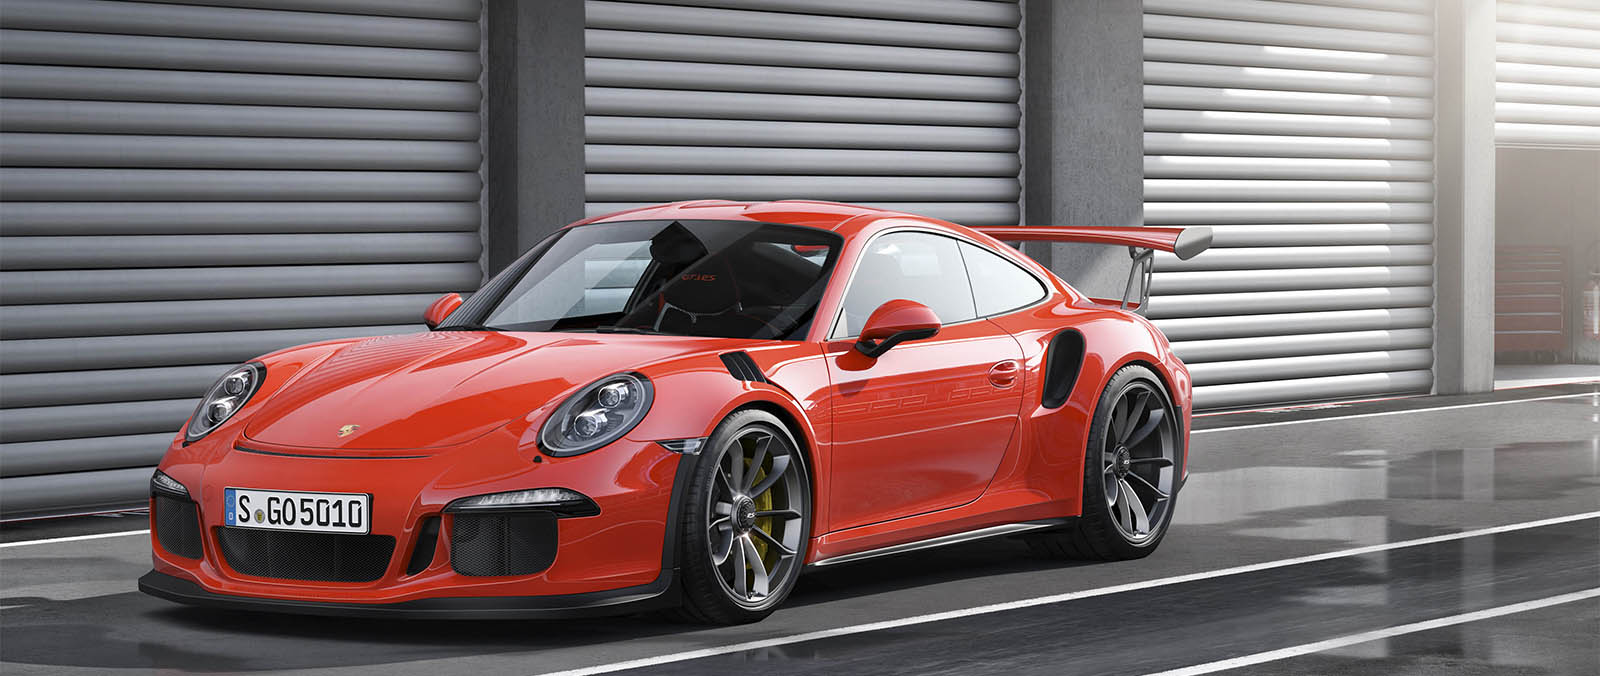 Ultrasportieve Porsche 911 GT3 RS in Geneve